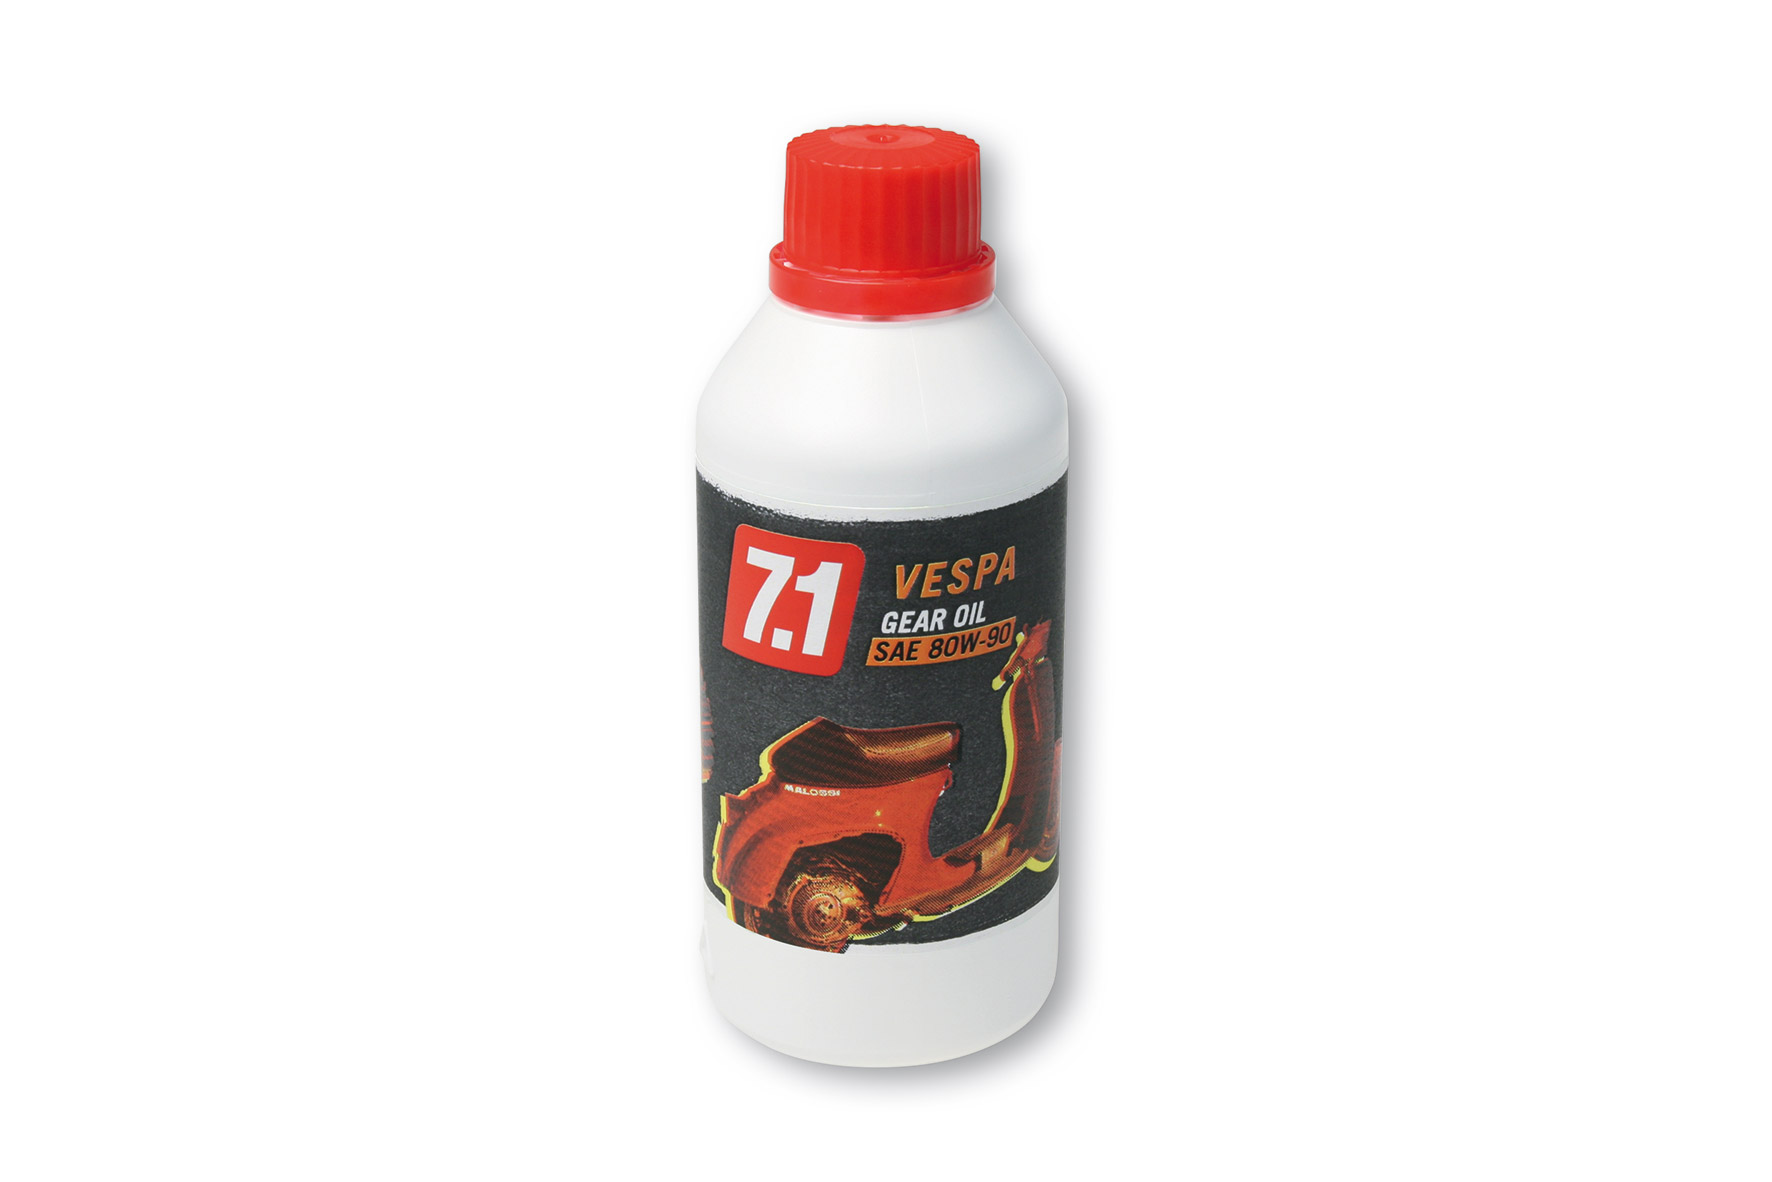 BOTTLE 7.1 VESPA Gear Oil (SAE 80W-90) 0.25L